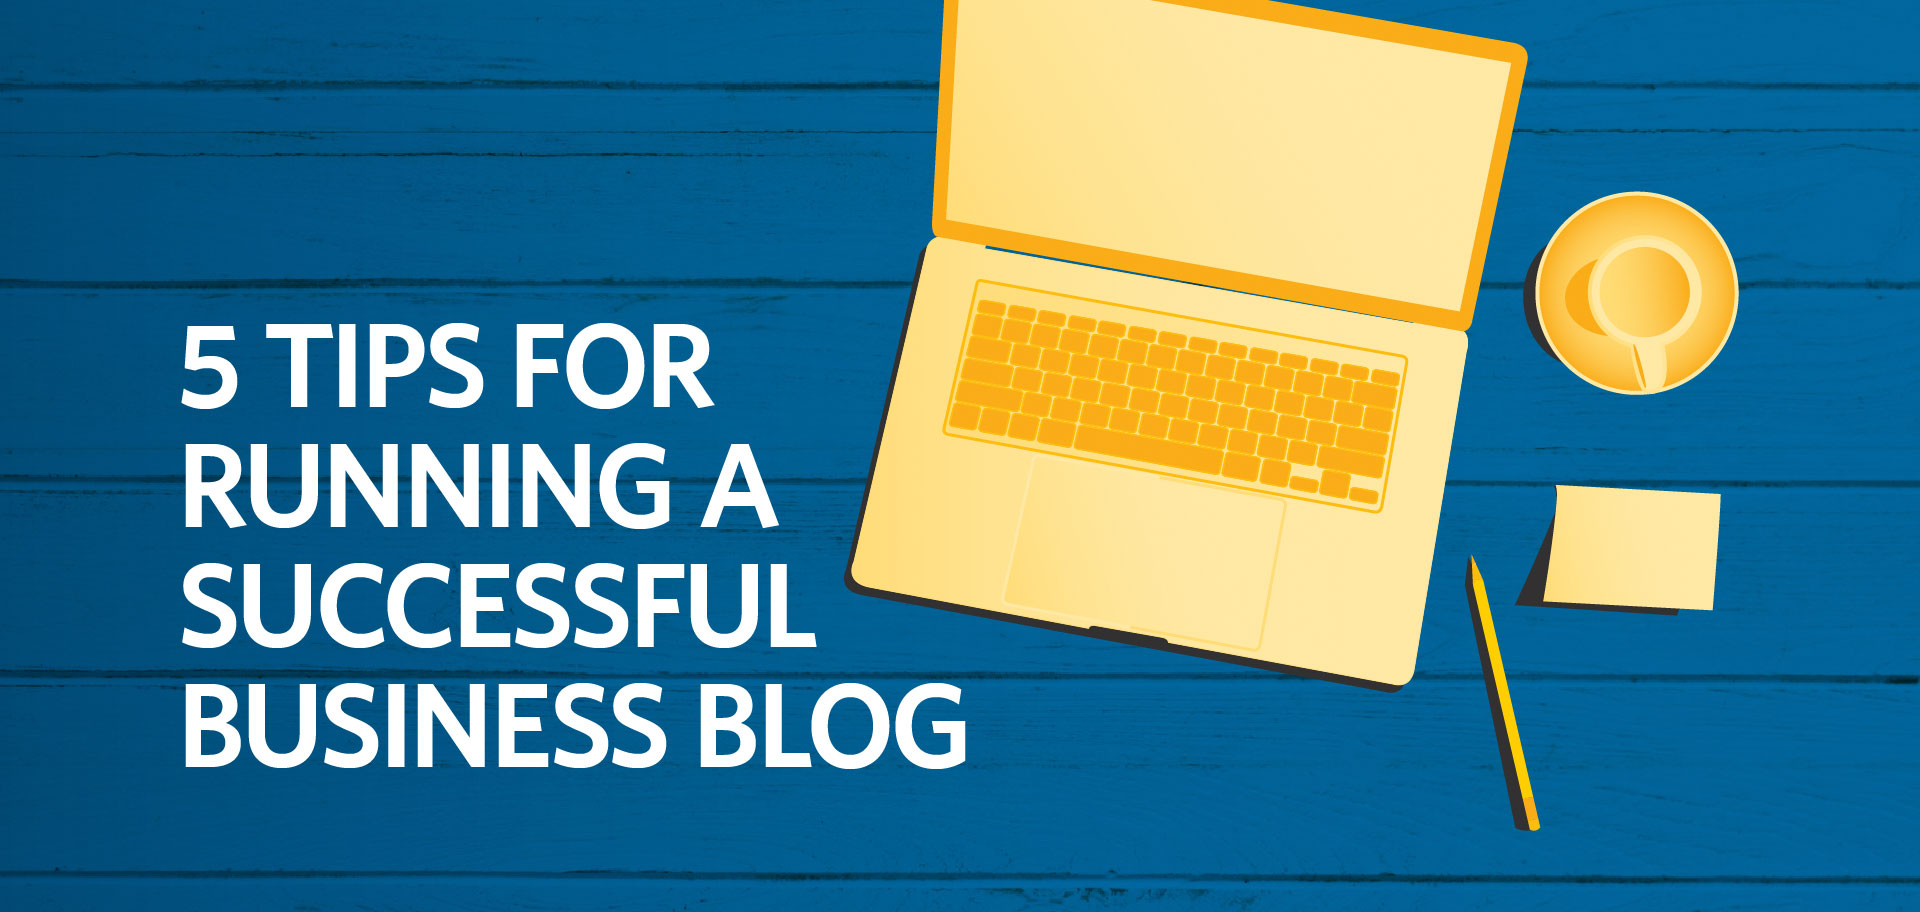 5 Tips for Running a Successful Business Blog by Kettle Fire Creative. business blog 5 Tips for Running a Successful Business Blog successful blog fi